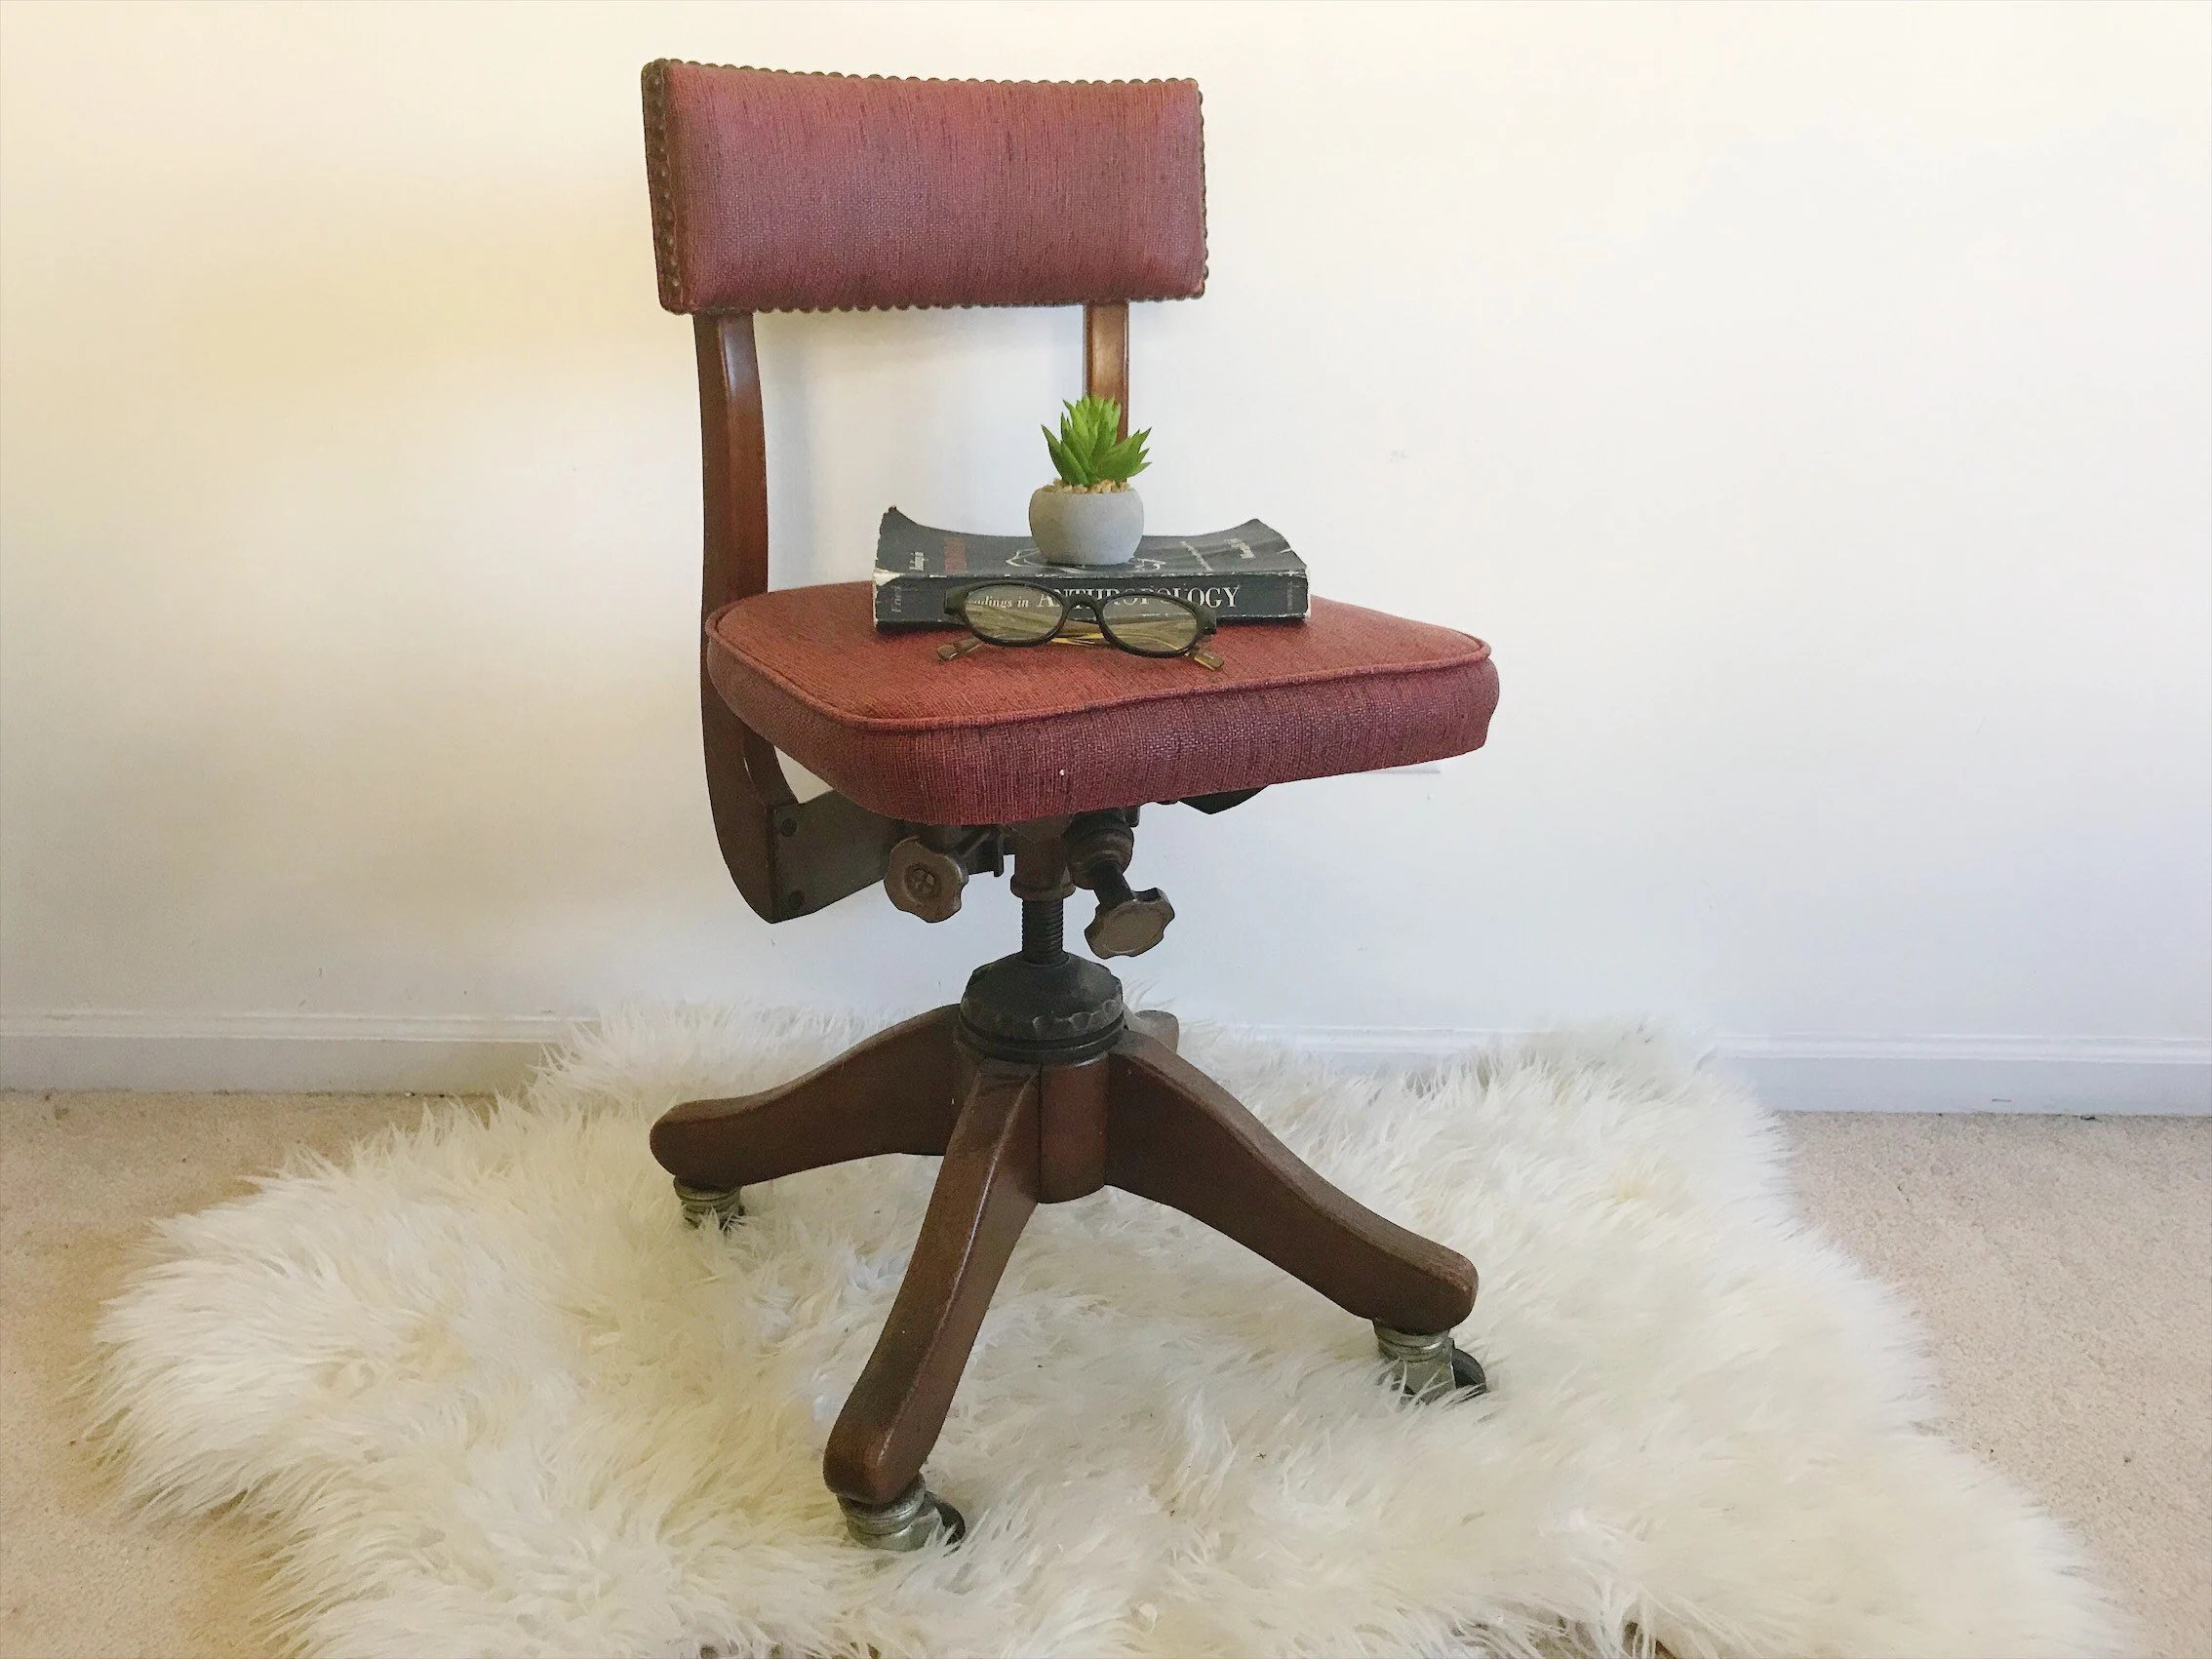 Container Haus Ilz Antique Office Chair Wood Vinyl Mid Century Industrial Drafting Stool Side Table Plant Stand Night Table Rustic Red